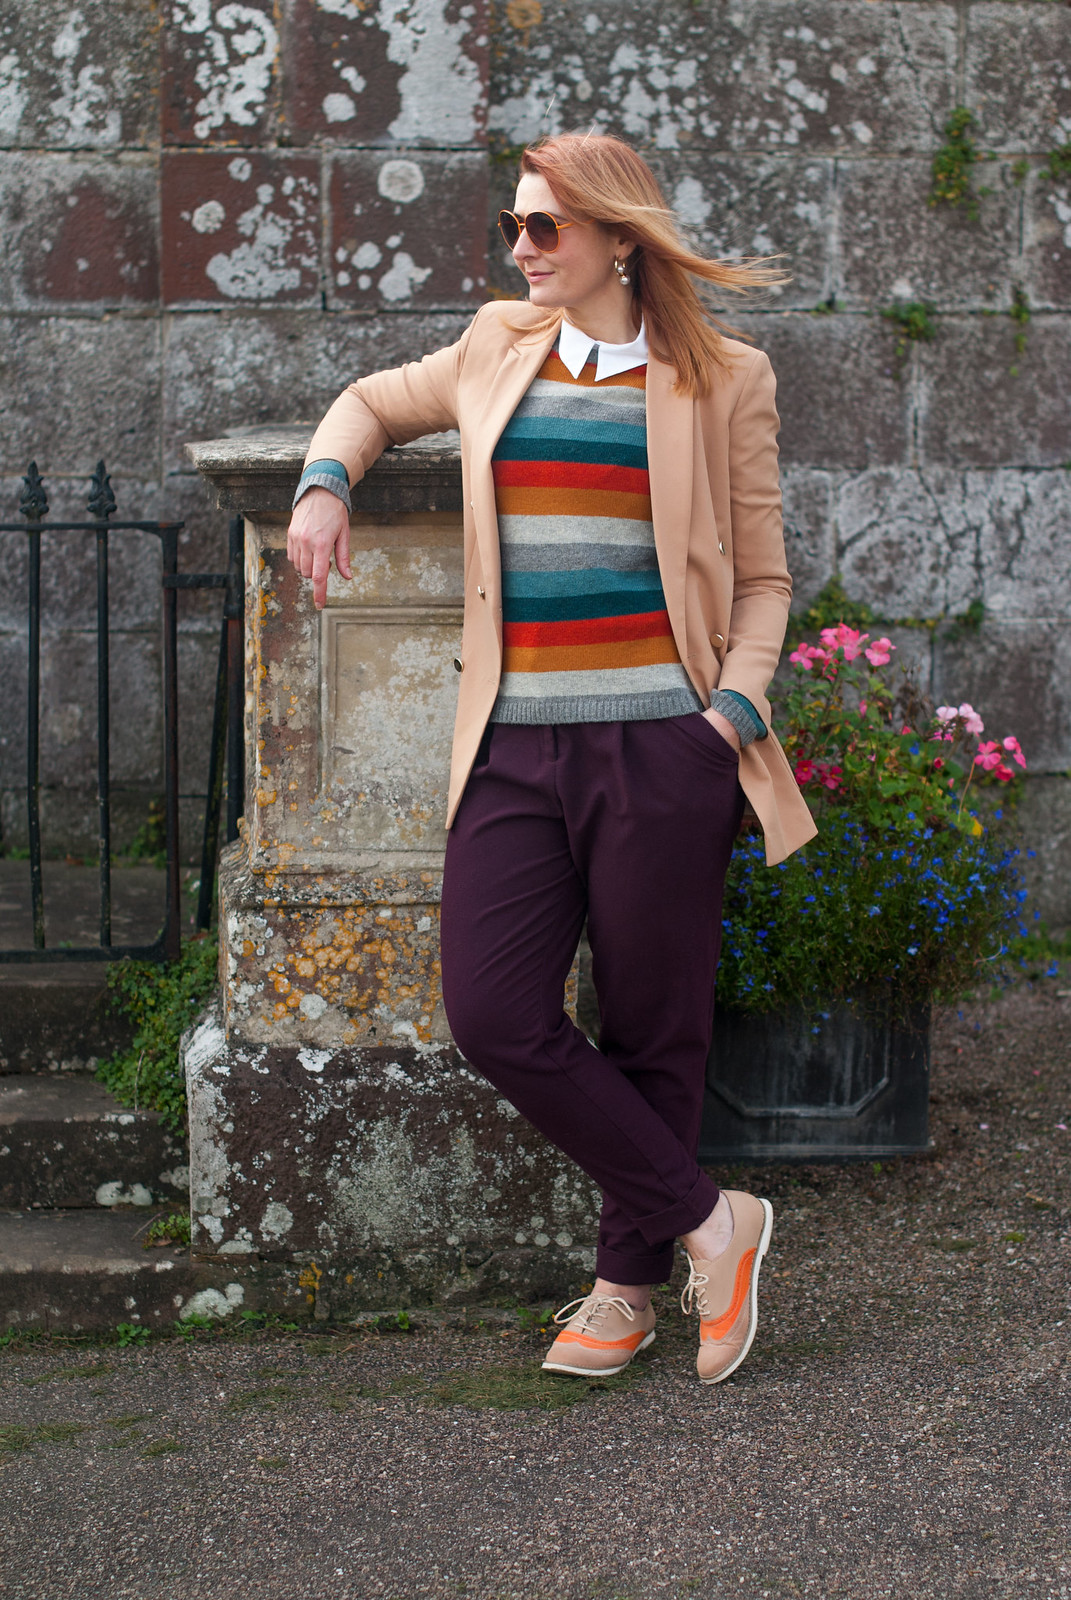 Preppy Style in the Autumn: Double breasted camel blazer striped Seasalt sweater white button down shirt aubergine peg trousers pants two tone brogues orange vintage sunglasses | Not Dressed As Lamb, Over 40 Style